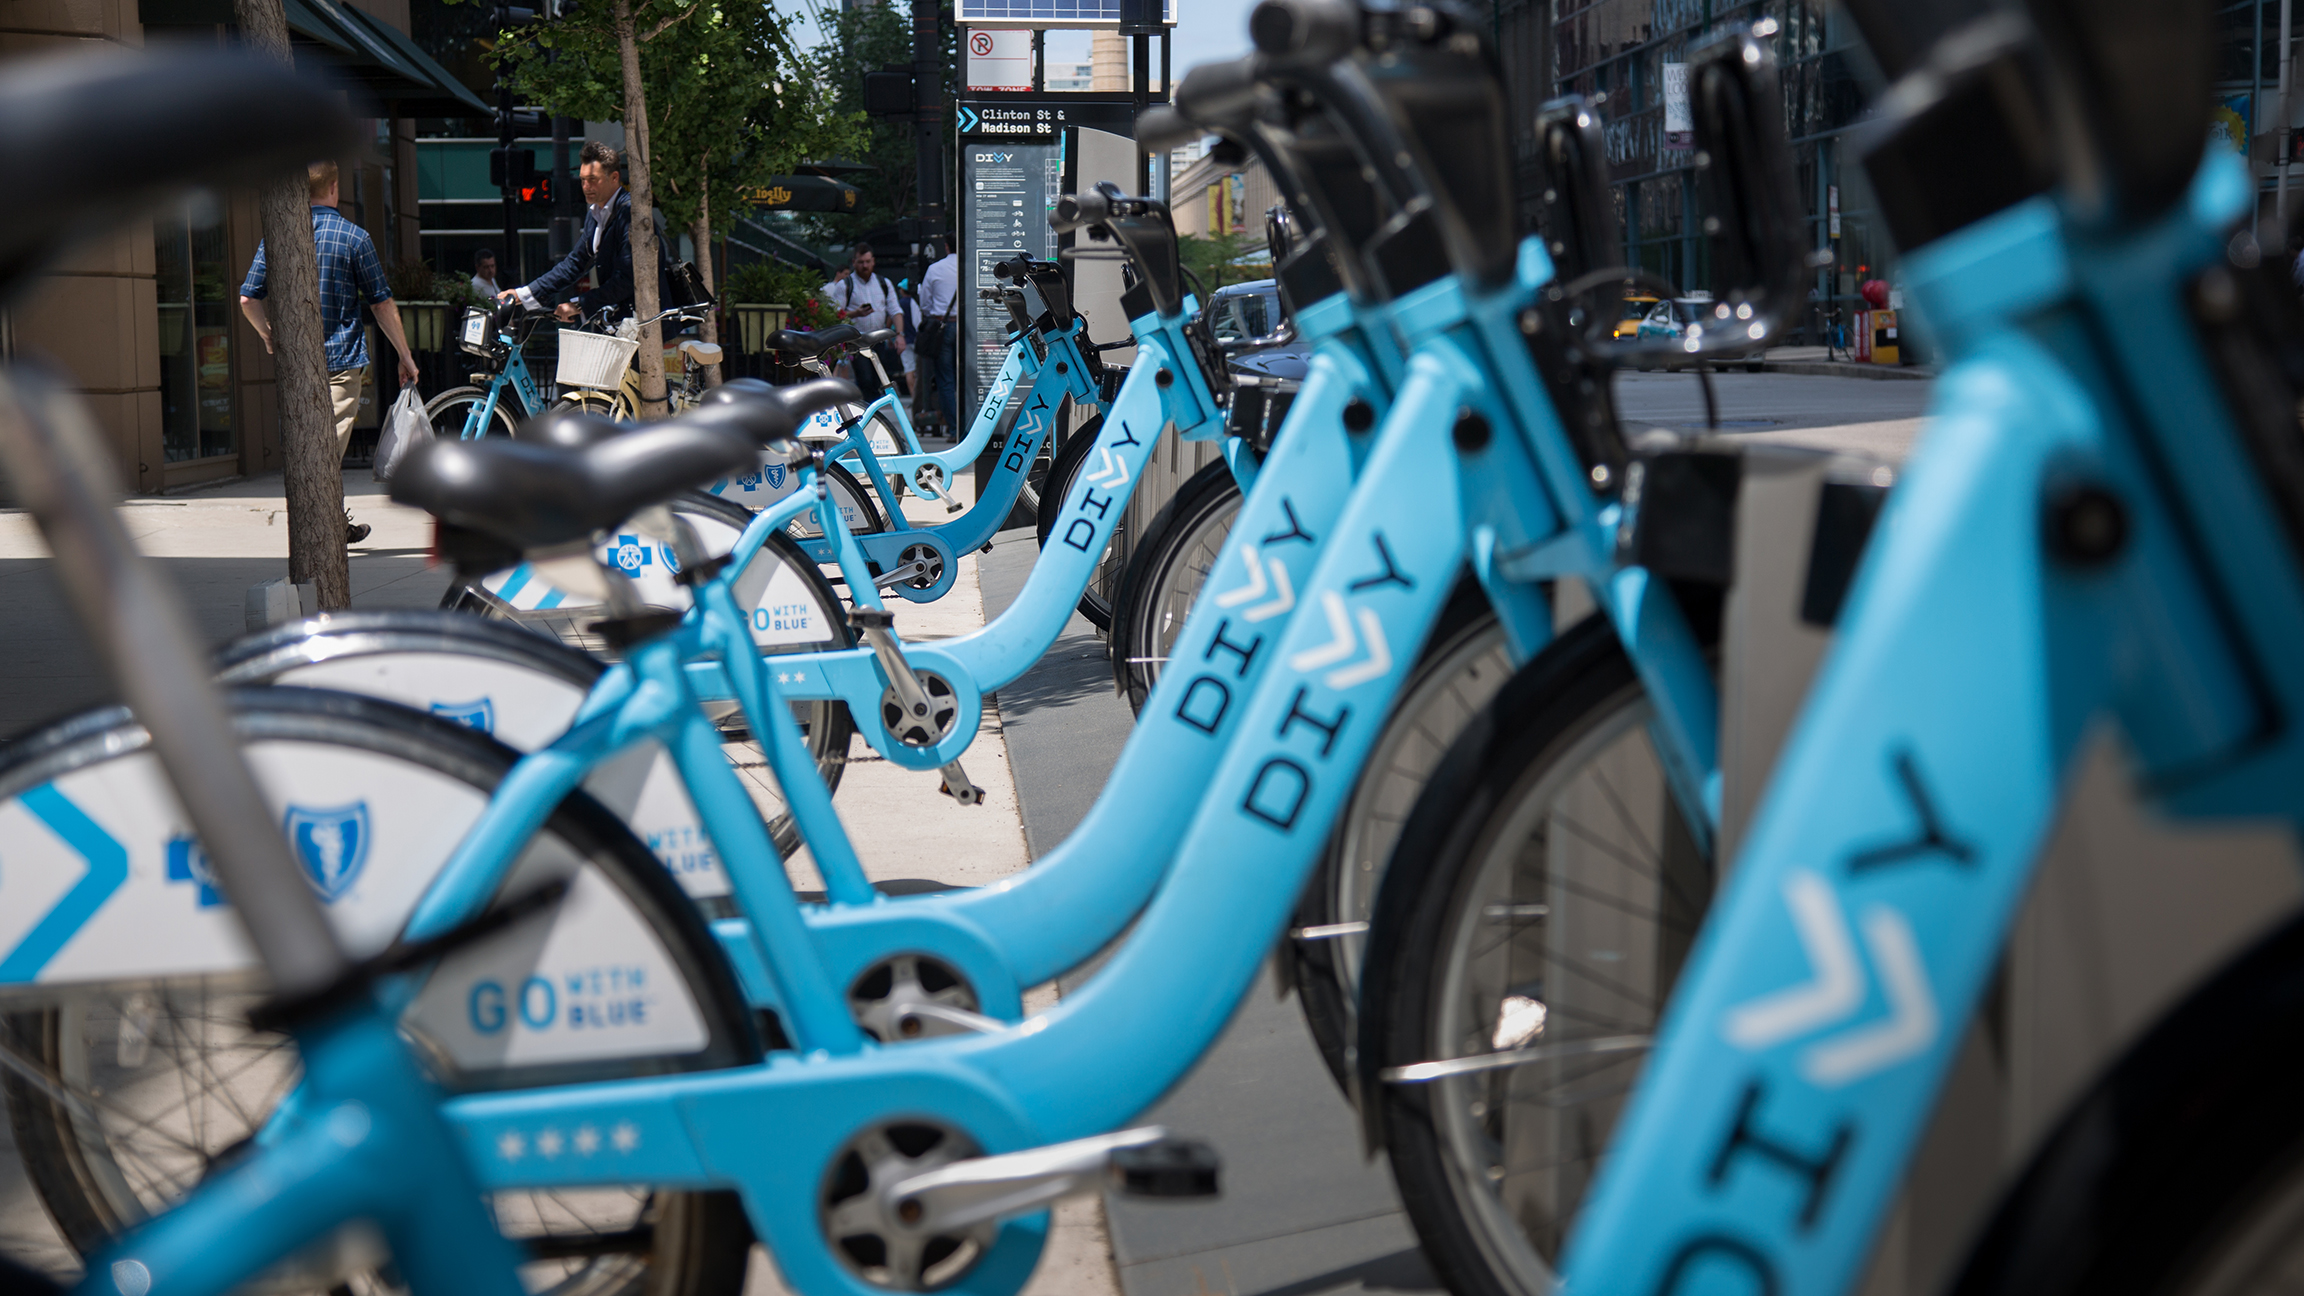 Plan to Merge Ventra App With Divvy Receives Federal Grant ...